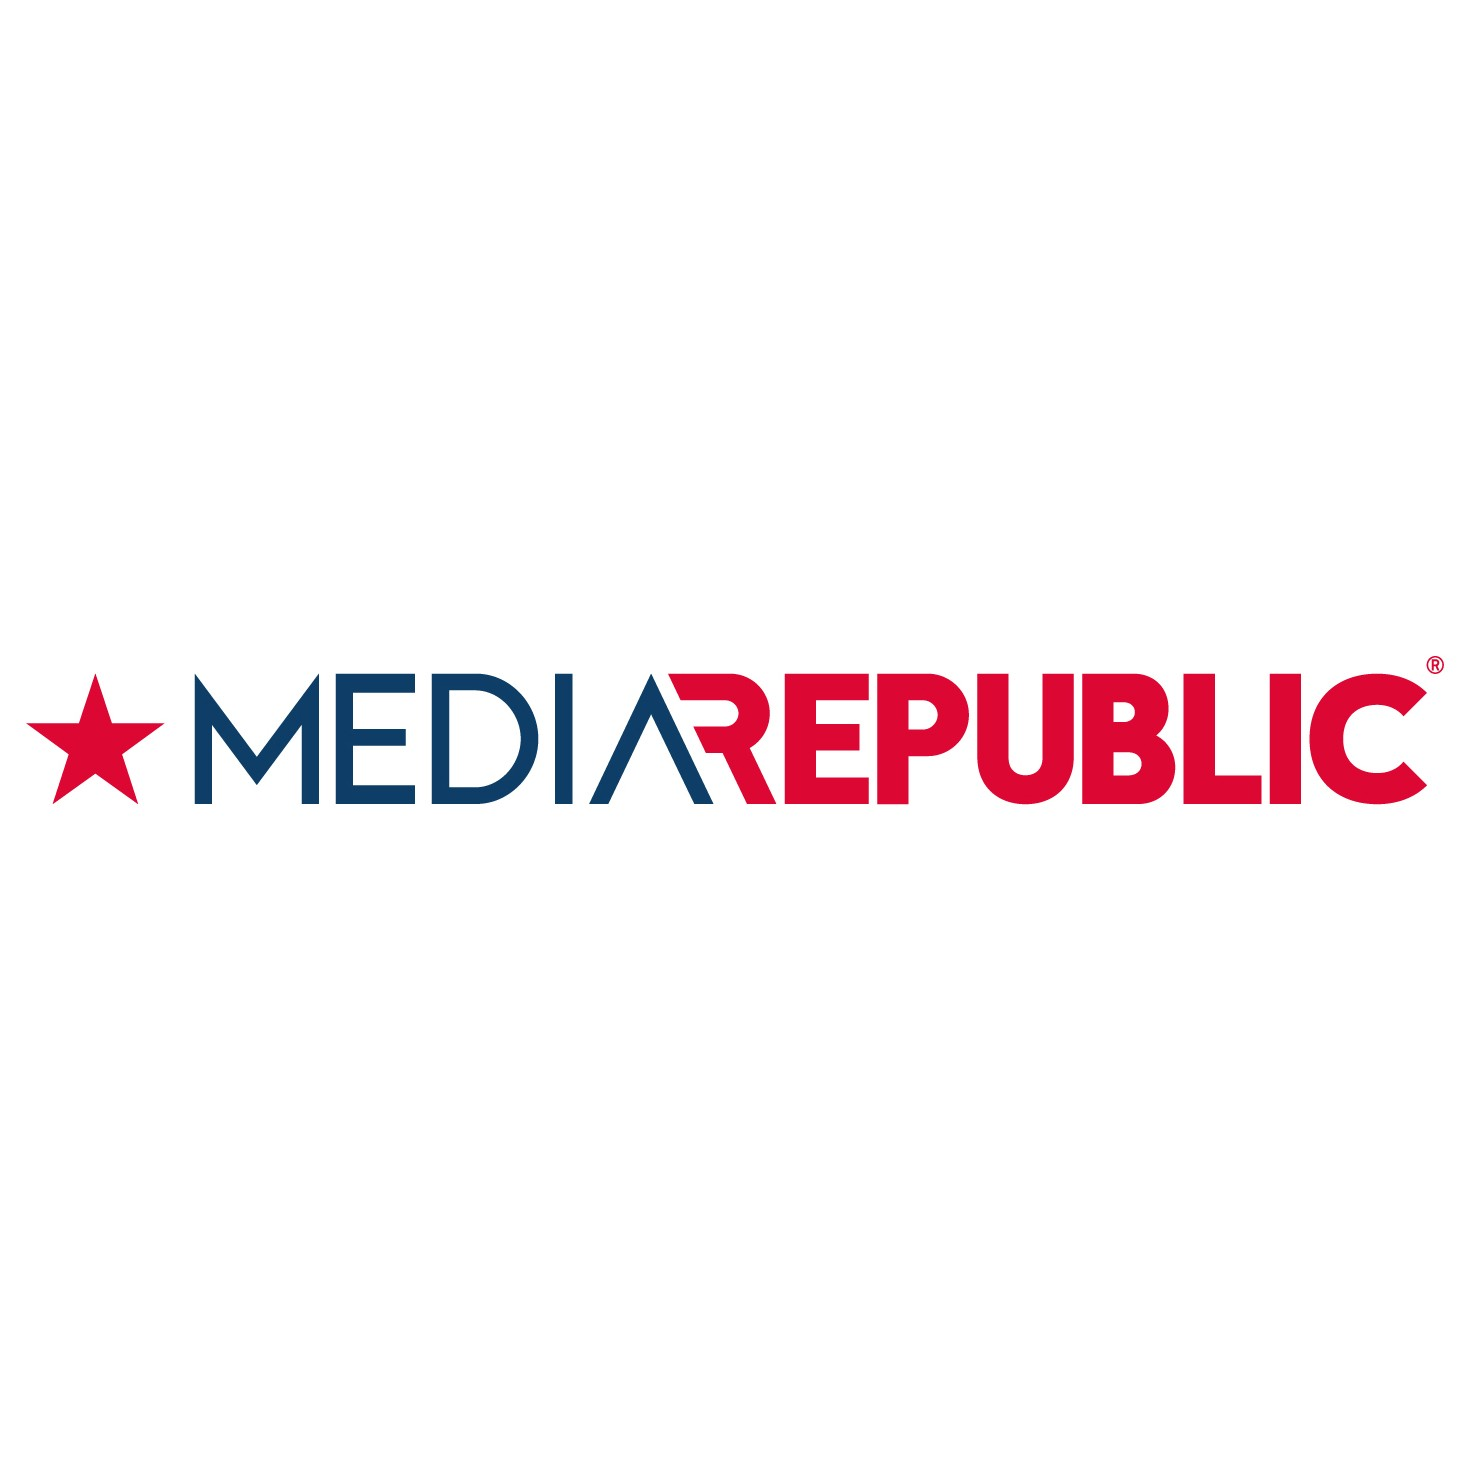 themediarepublic